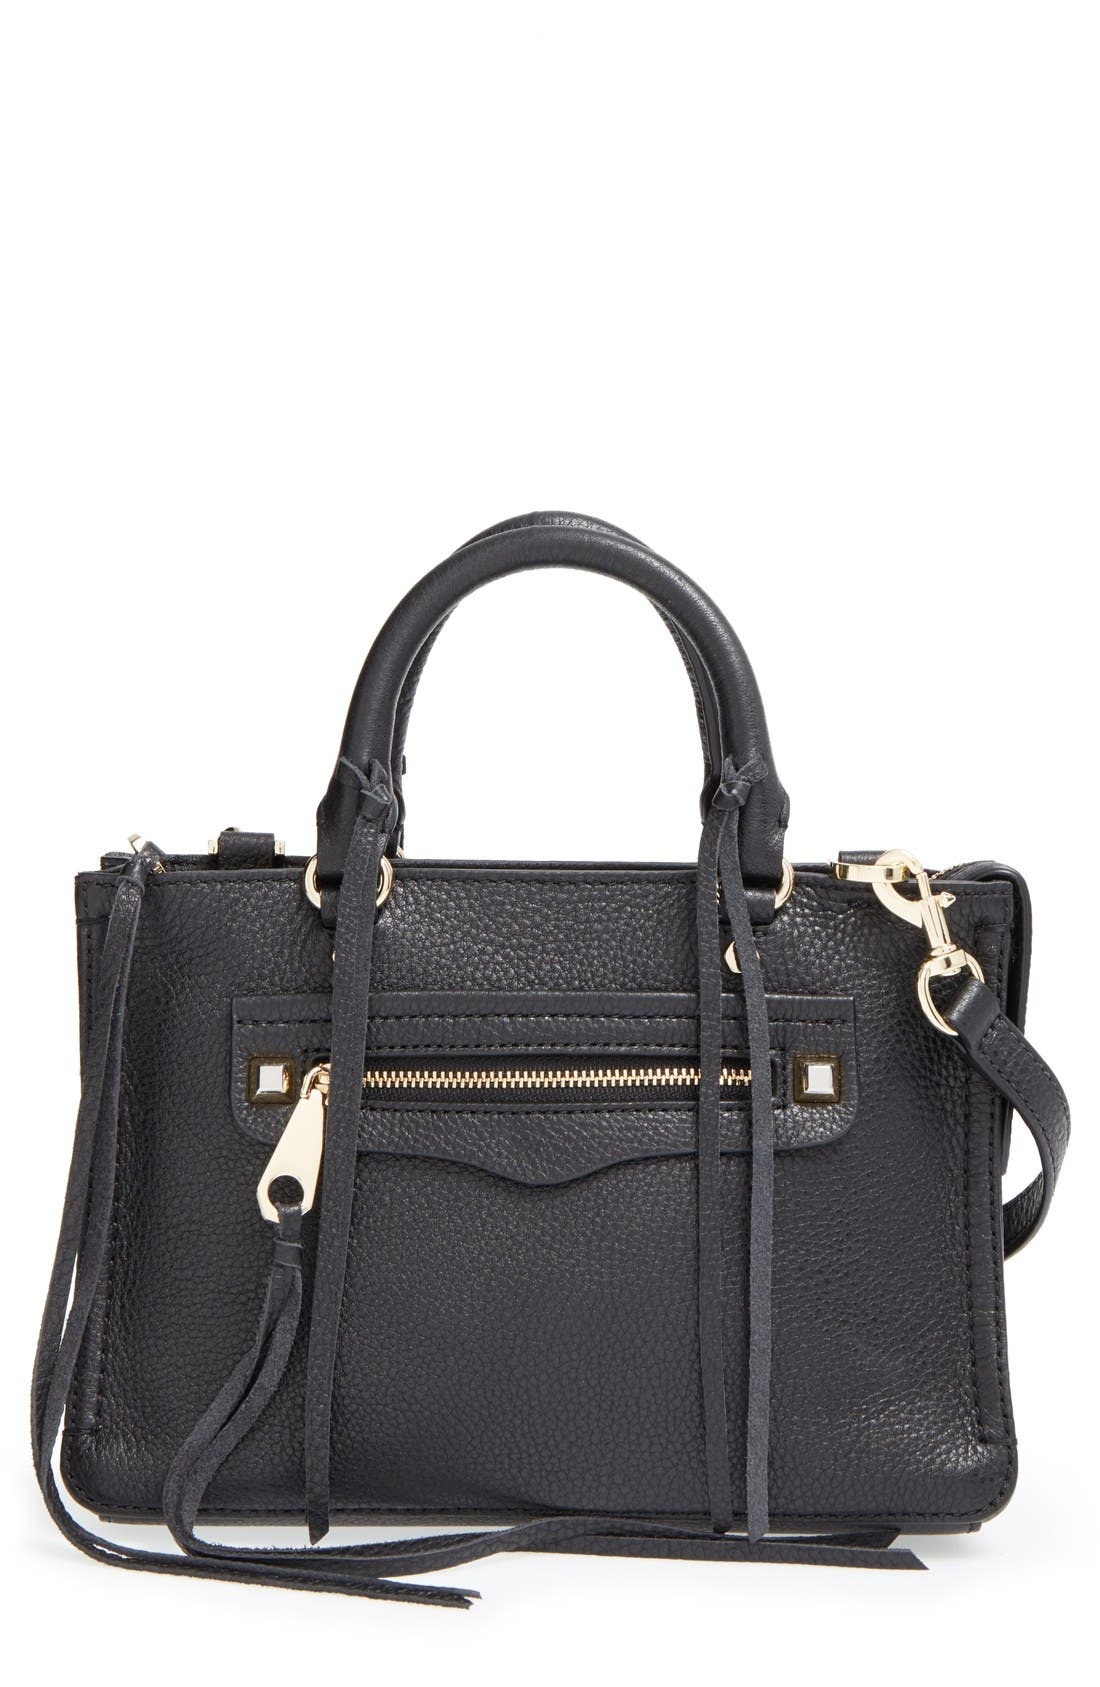 Alternate Image 1 Selected - Rebecca Minkoff 'Micro Regan' Satchel